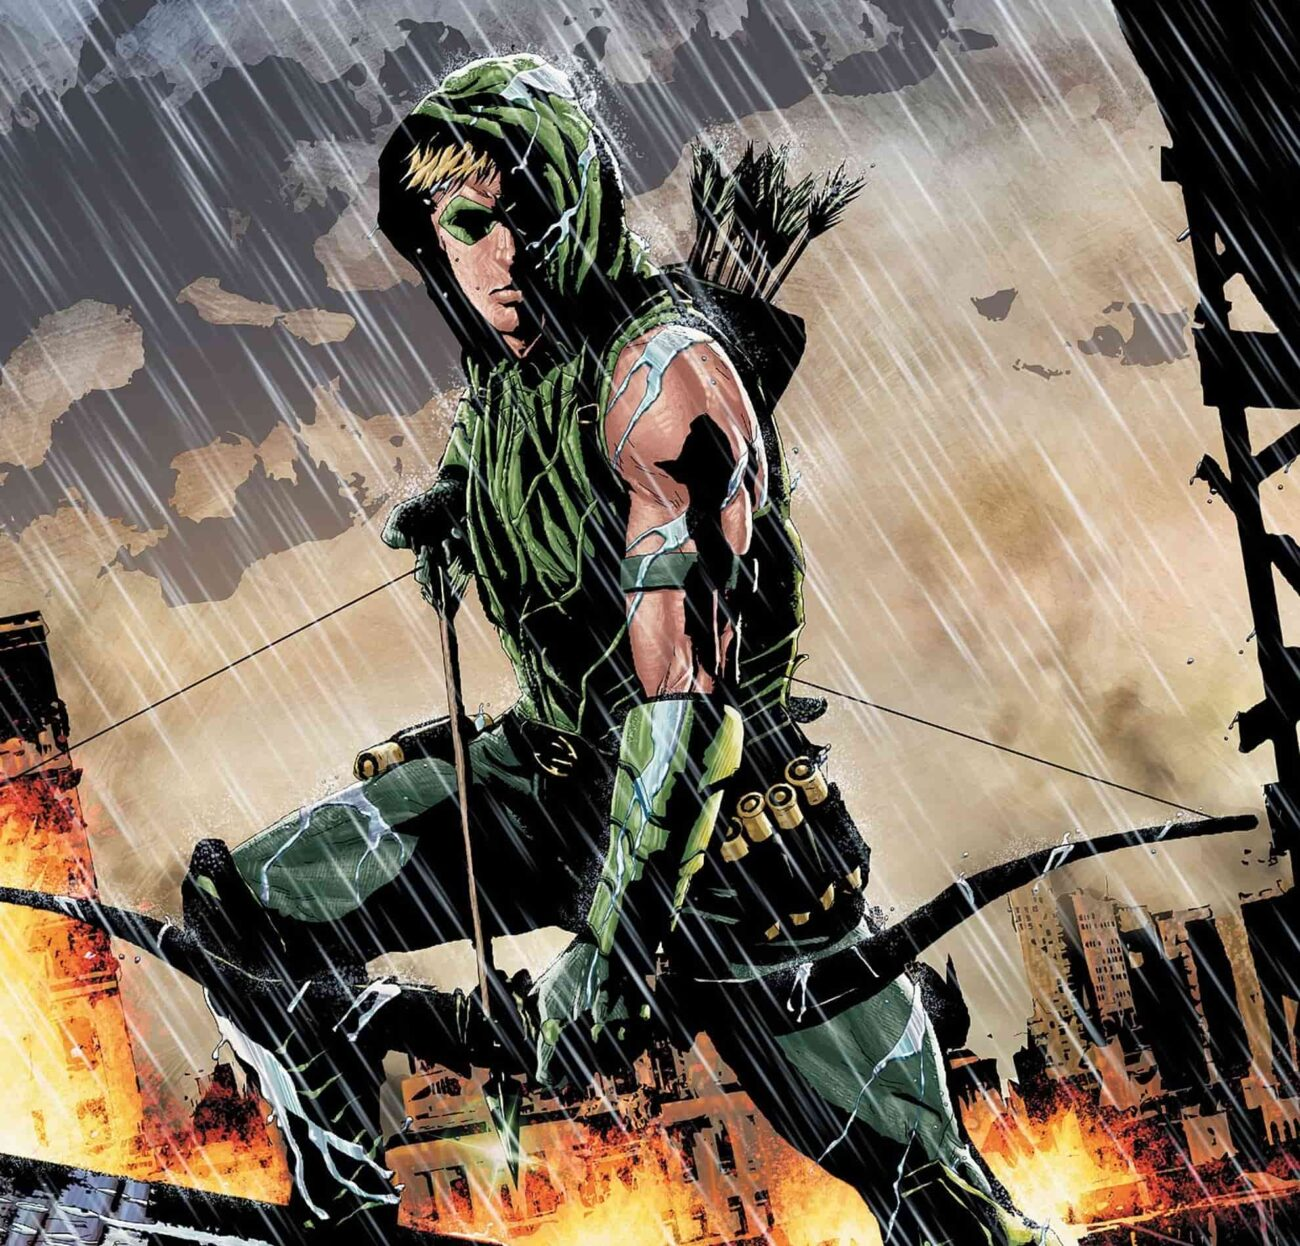 """Zack Snyder has promised a """"mind-blowing hero cameo"""" in his new 'Justice League' cut. Could it be the Green Arrow? Join us in looking at the evidence!"""